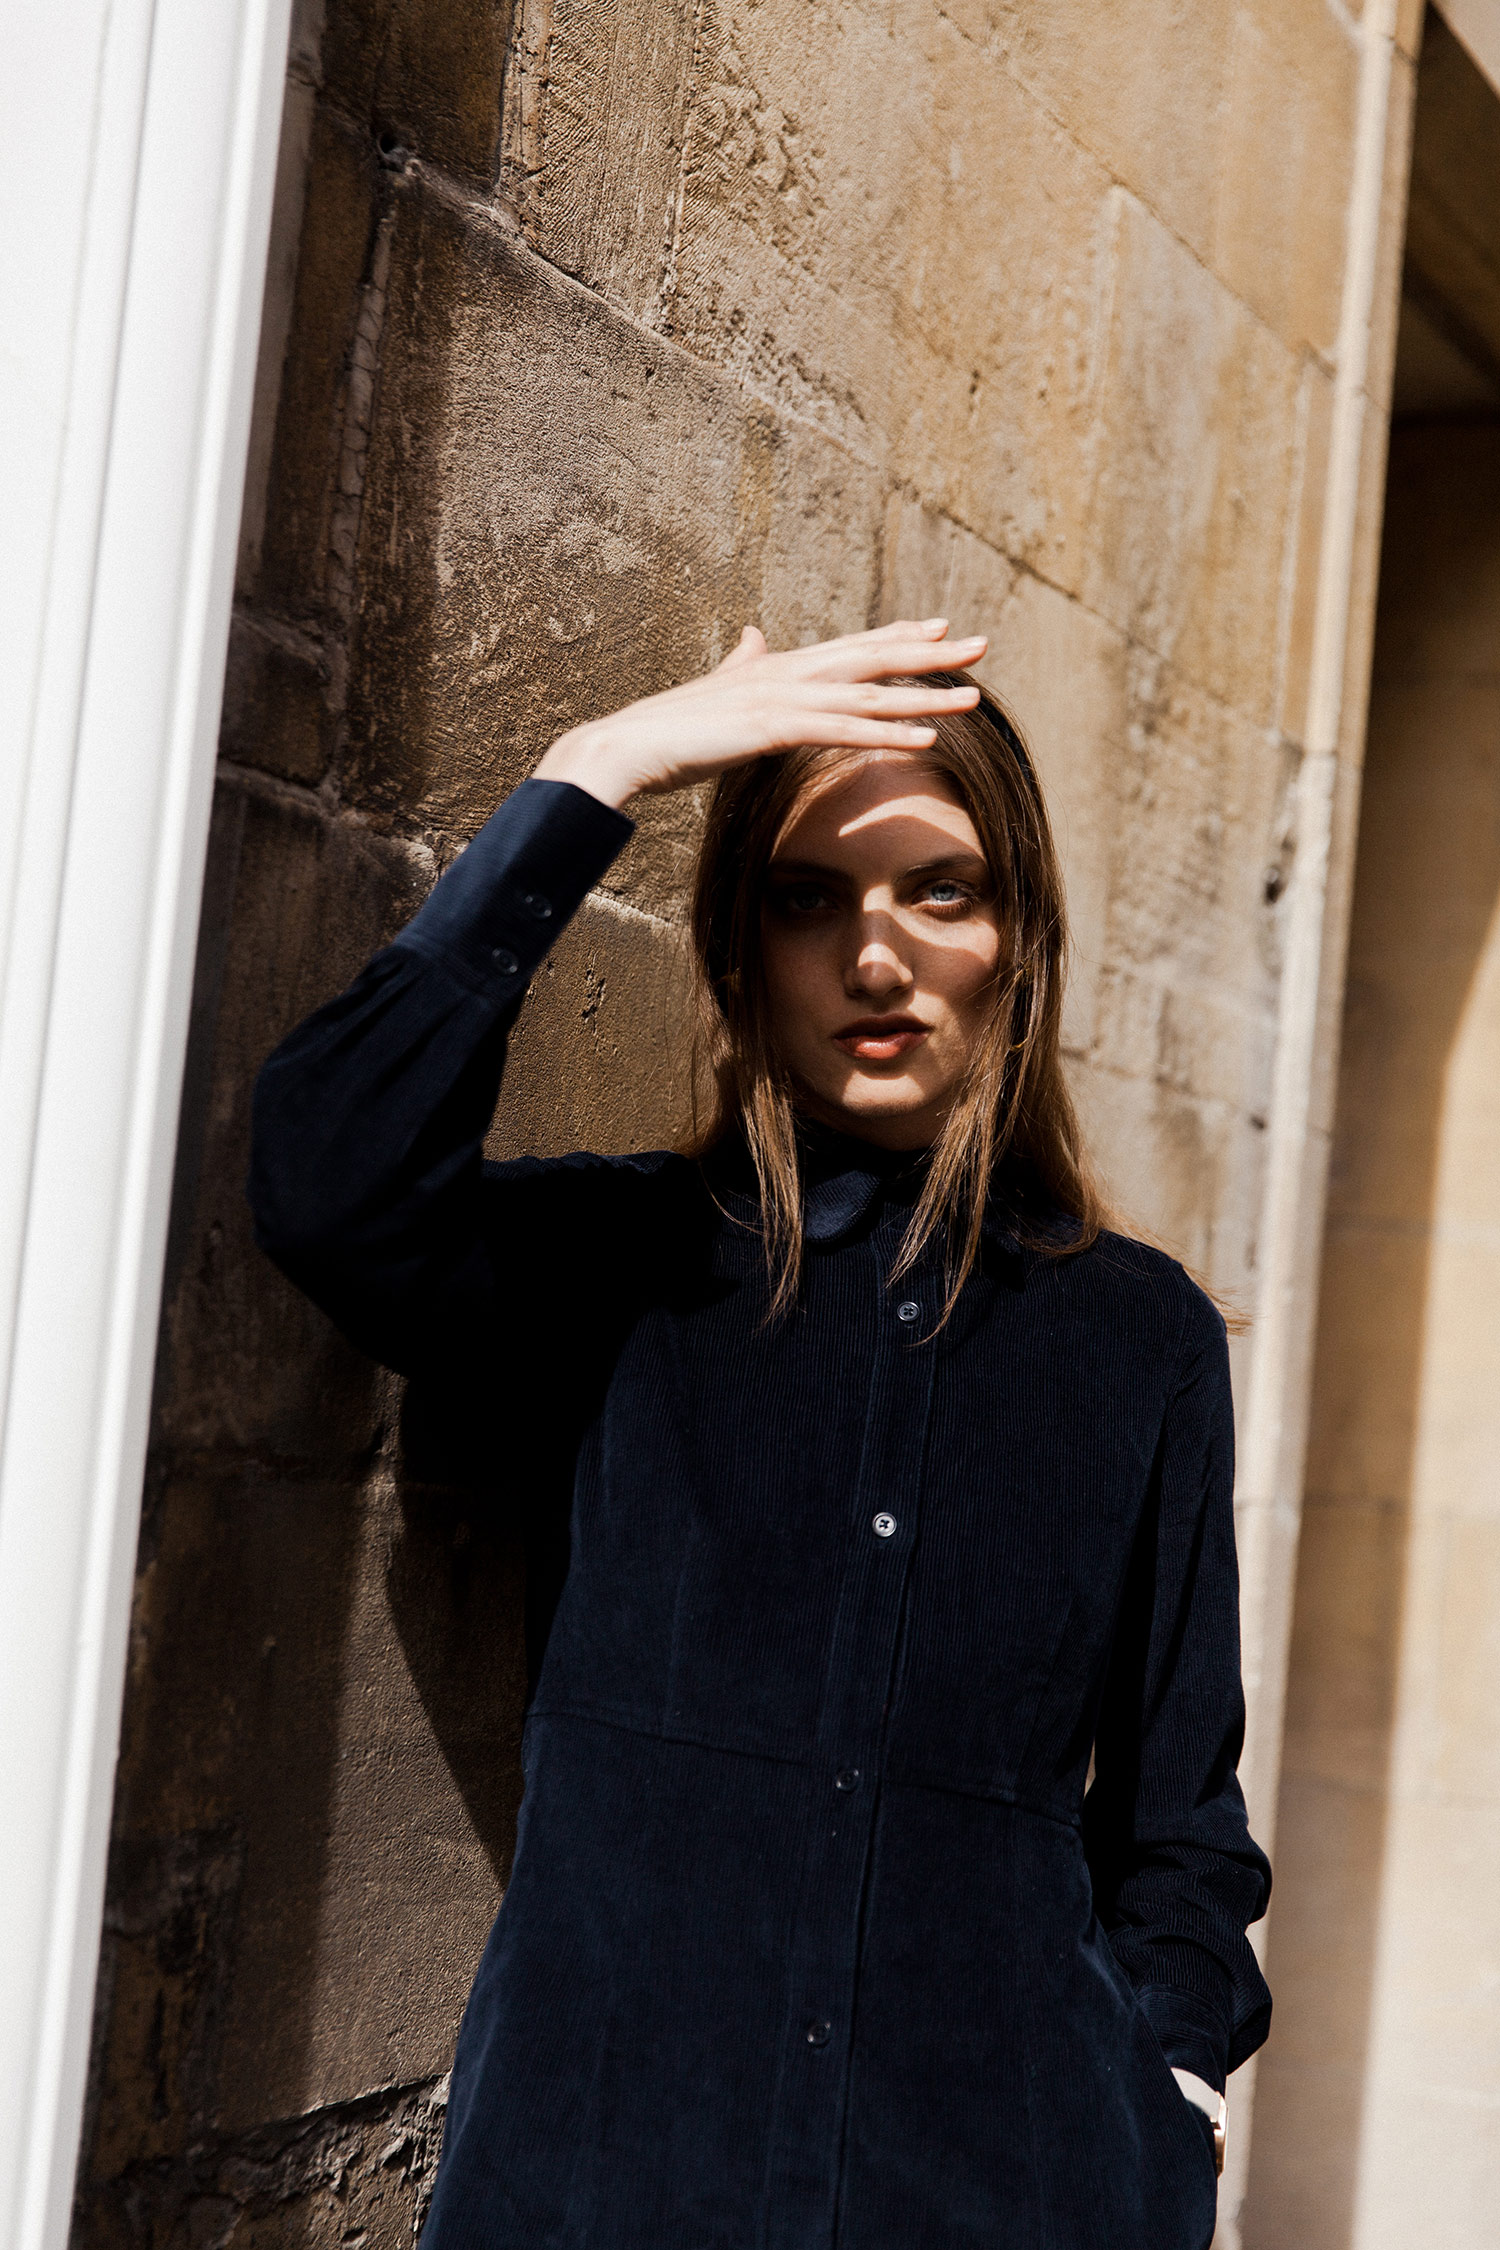 Cord shirt dress in dark navy, £160, Toast; Ruota hoop earrings by Laura Lombardi, £165, Found; Rose gold watch with marble face by CLUSE, £119.95, Quadri; Black velvet ribbon, as before